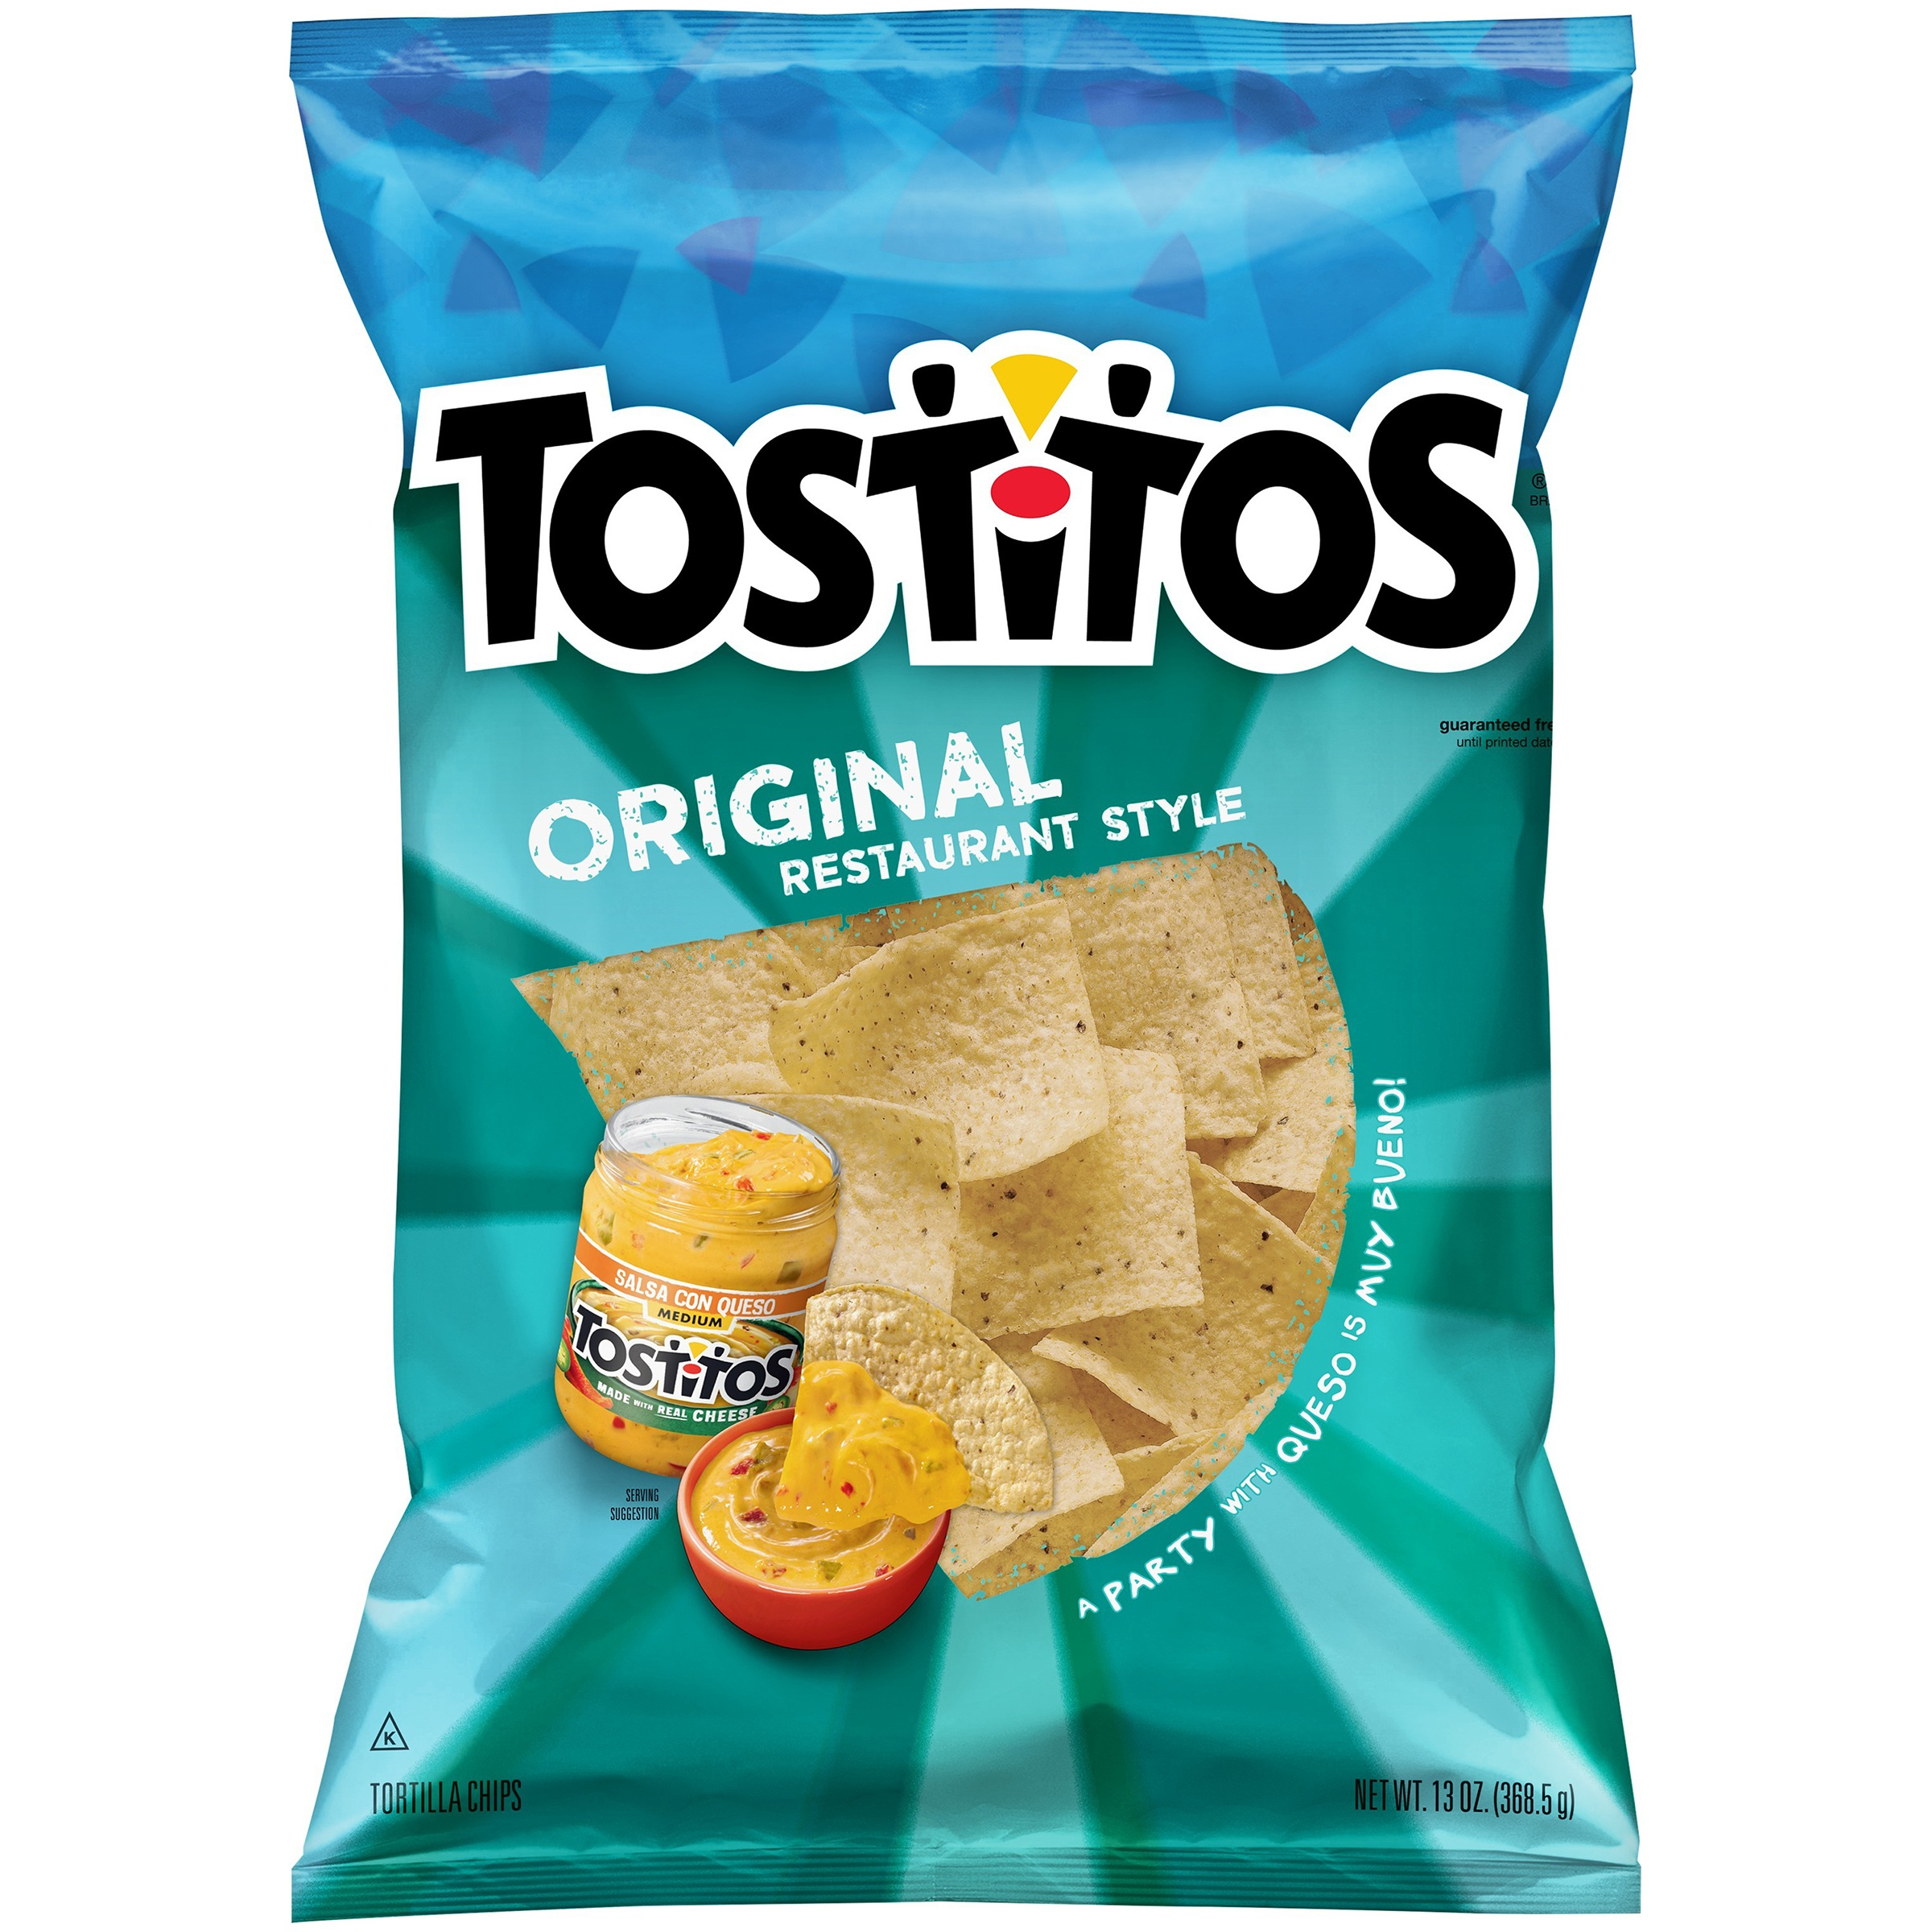 Tostitos Original Restaurant Style Tortilla Chips, 13 oz Bag